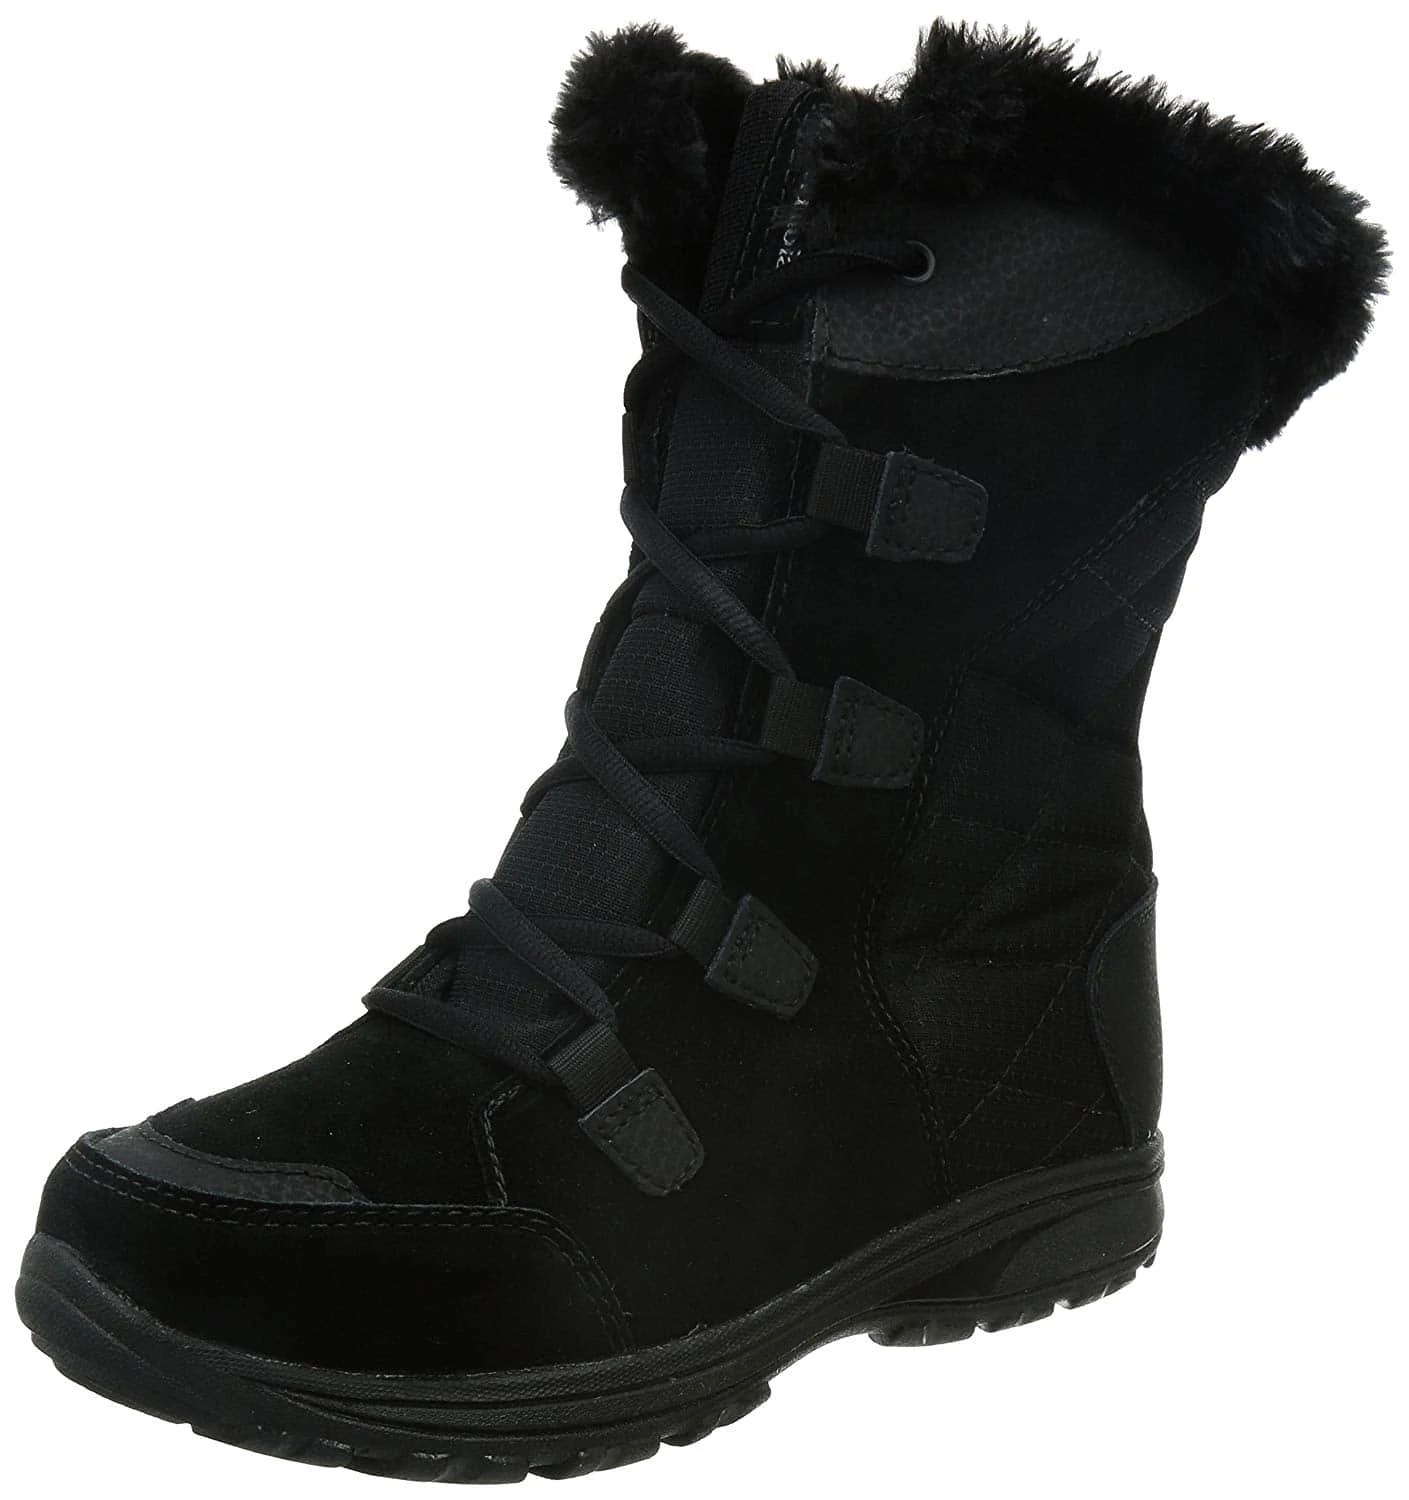 Columbia Women's ICE Maiden II Snow Boot Side